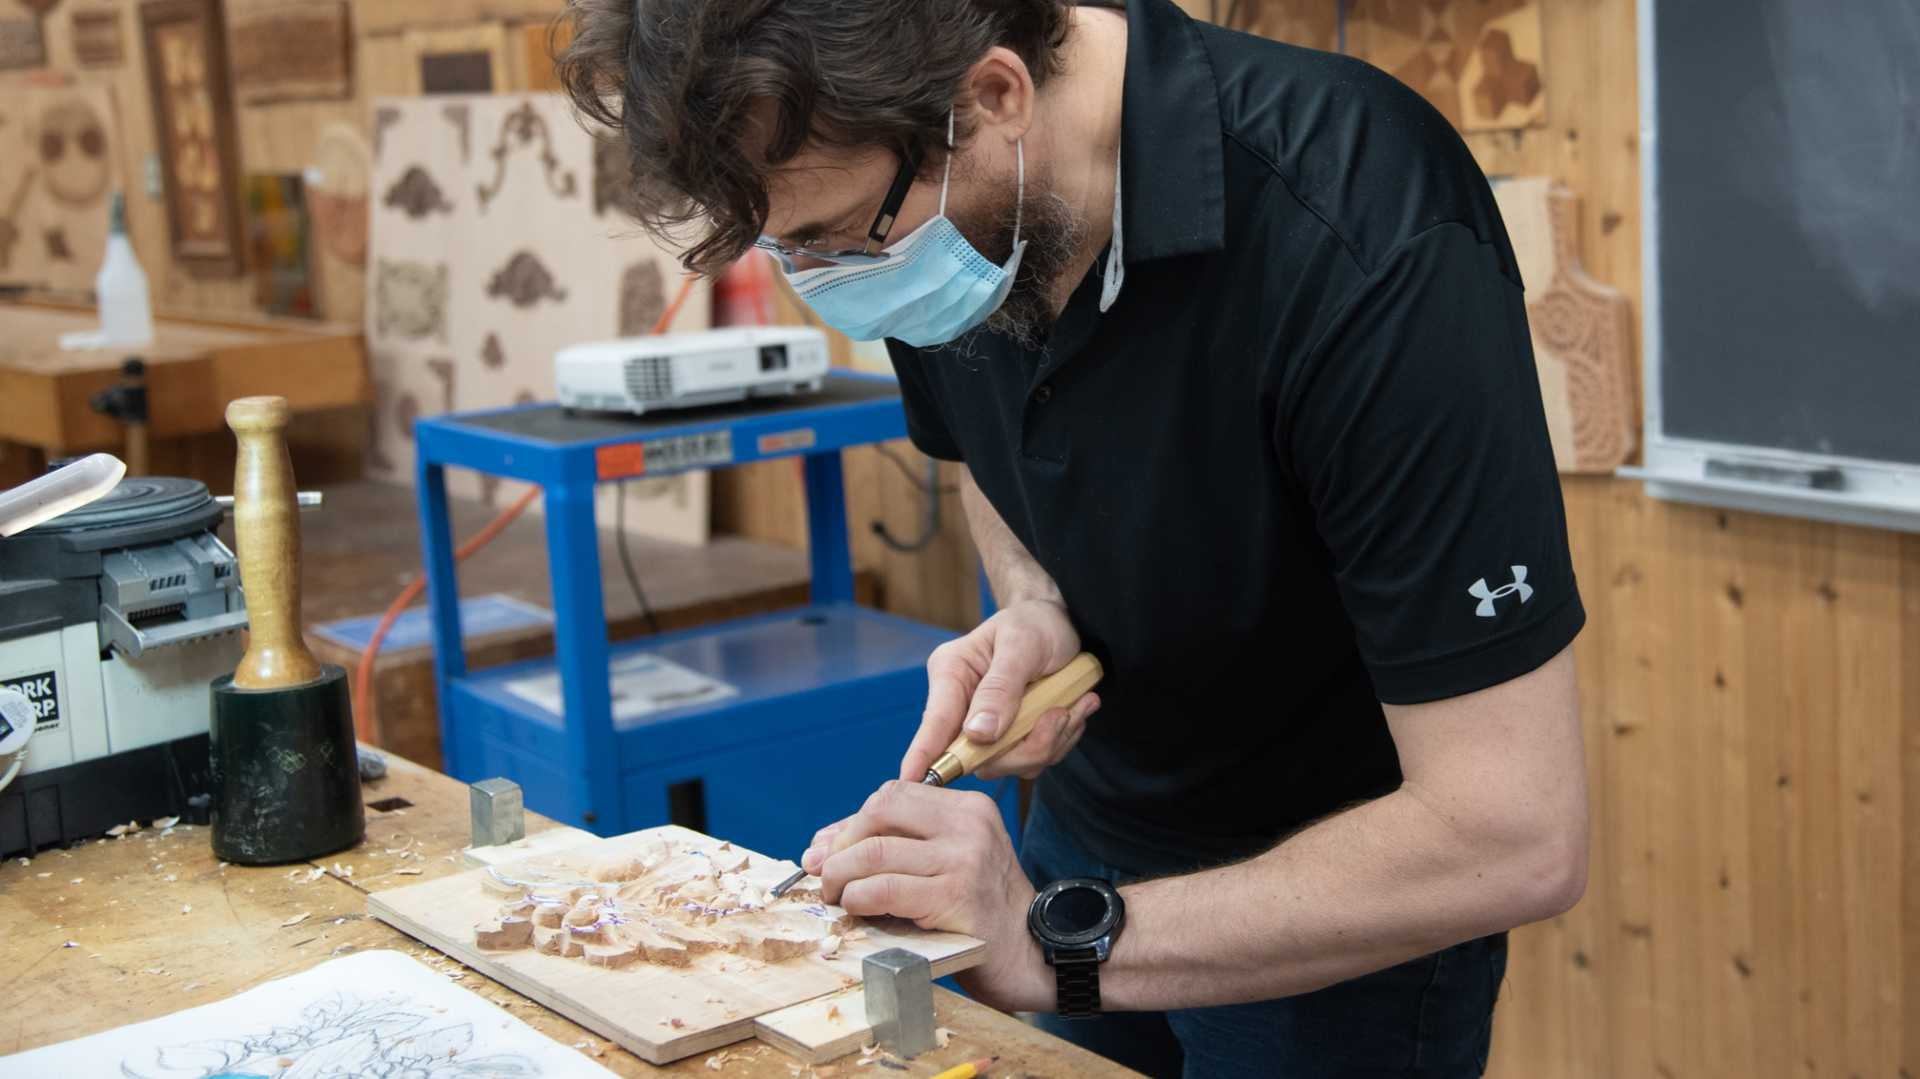 Learn Wood Carving with Alexander Grabovetskiy